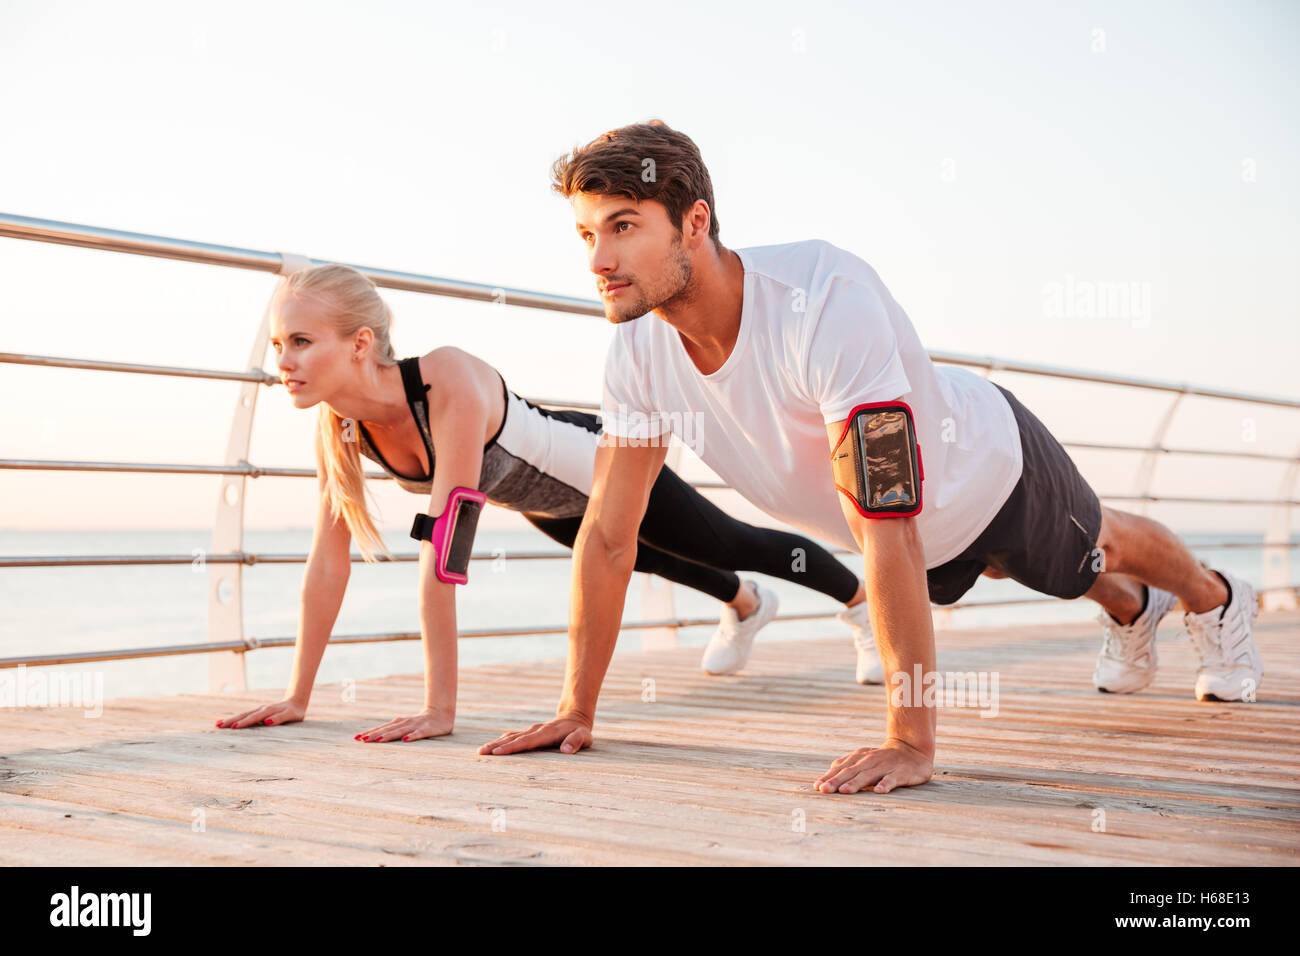 Young sports woman and man doing plank exercise together outdoors at the pier - Stock Image